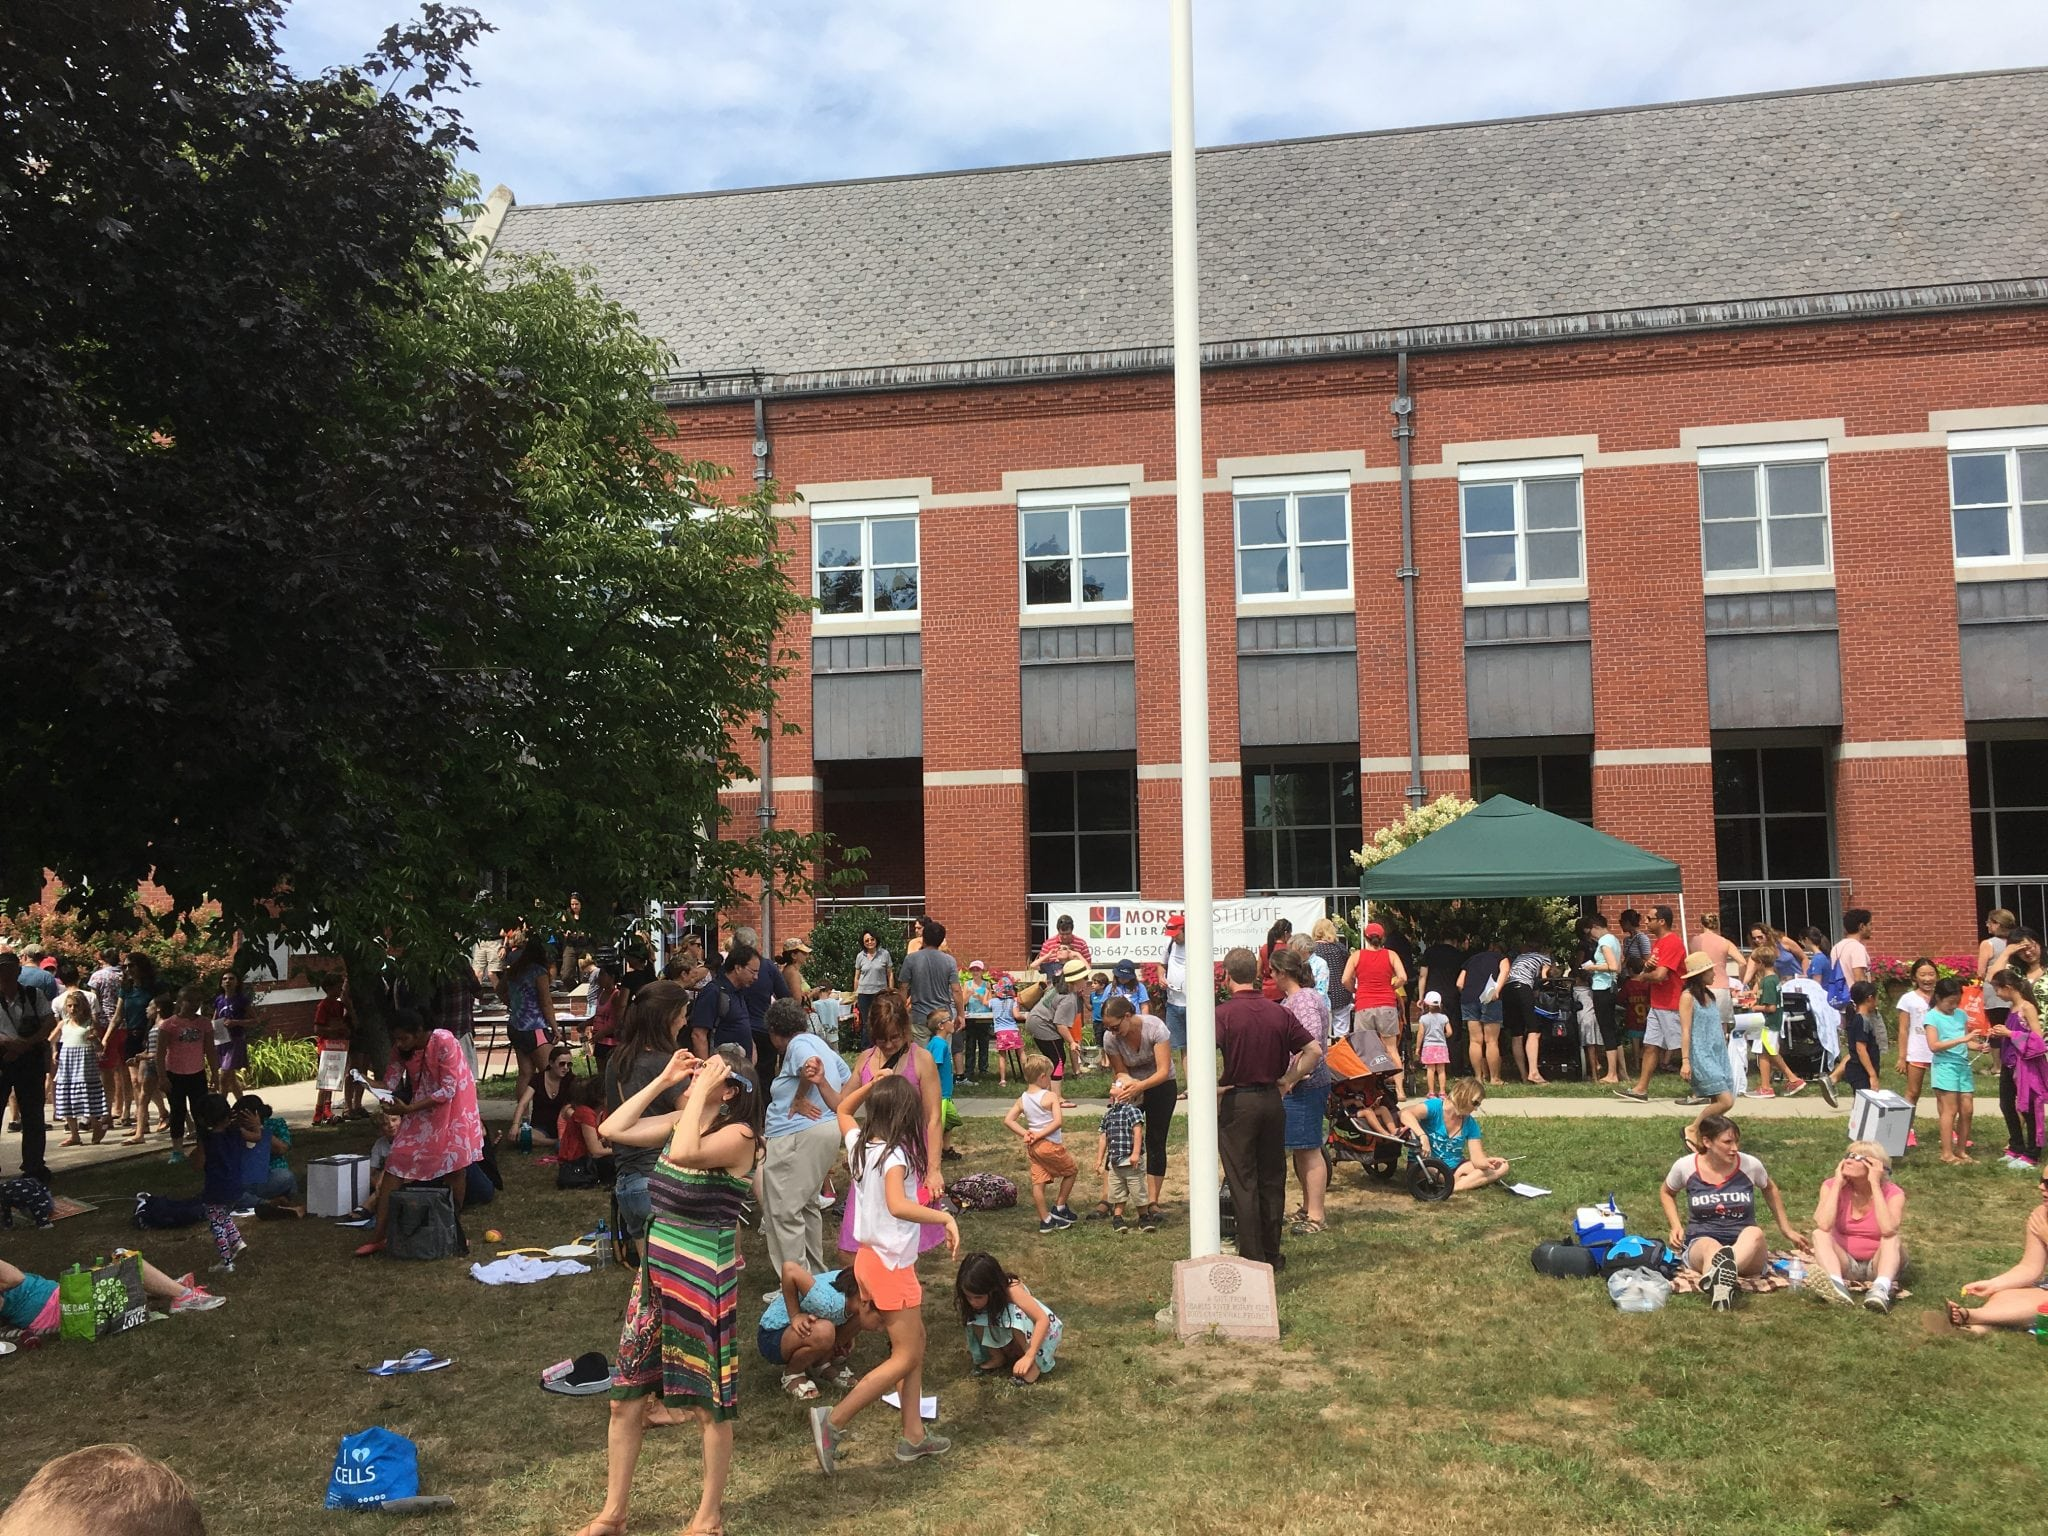 Morse Institute Library Natick, Eclipse